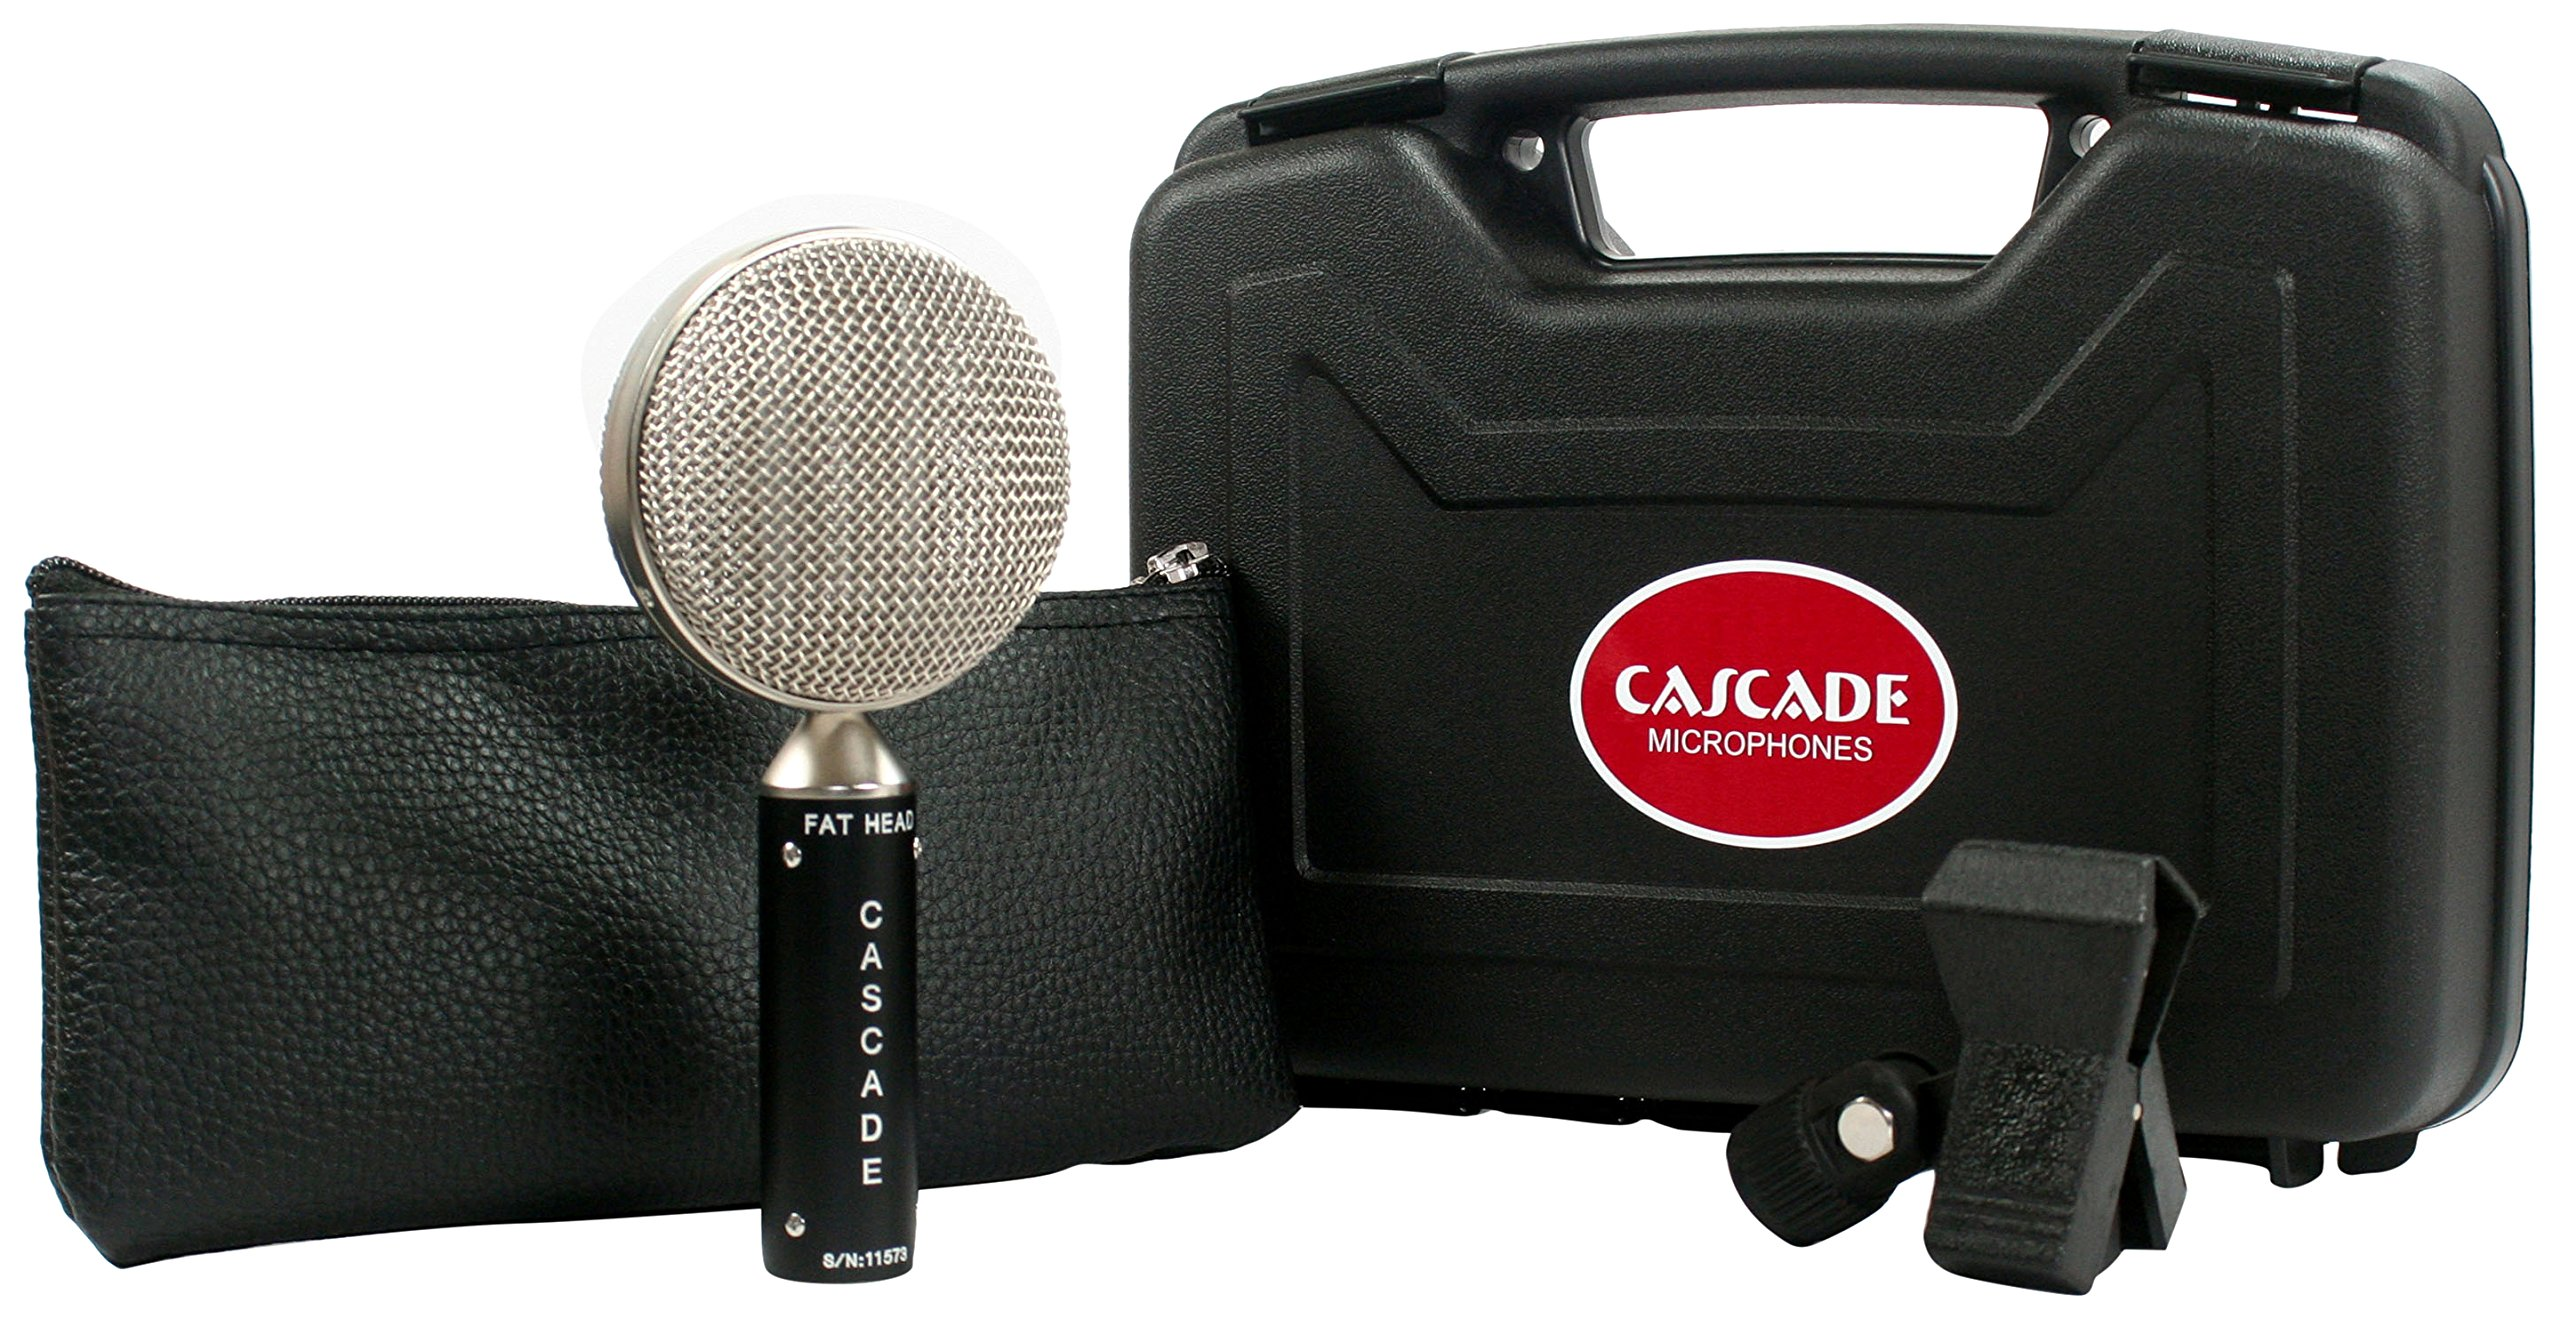 Cascade Microphones 98-B-A Ribbon Microphone by Cascade Microphones